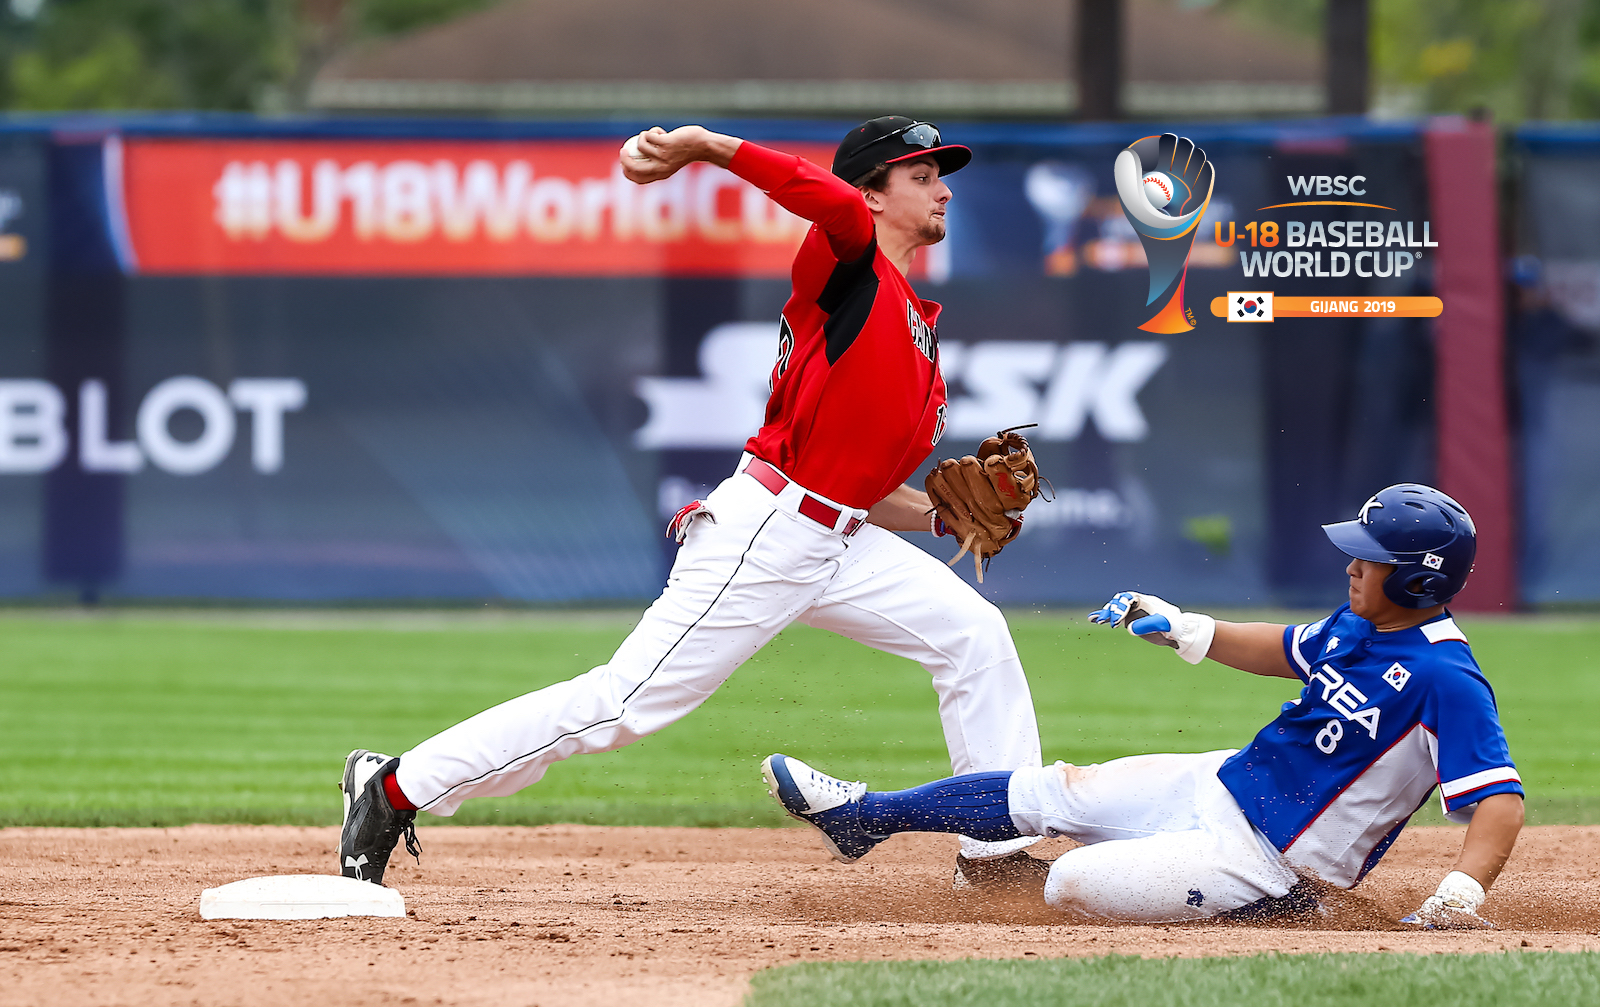 WBSC announces U18 Baseball World Cup schedule